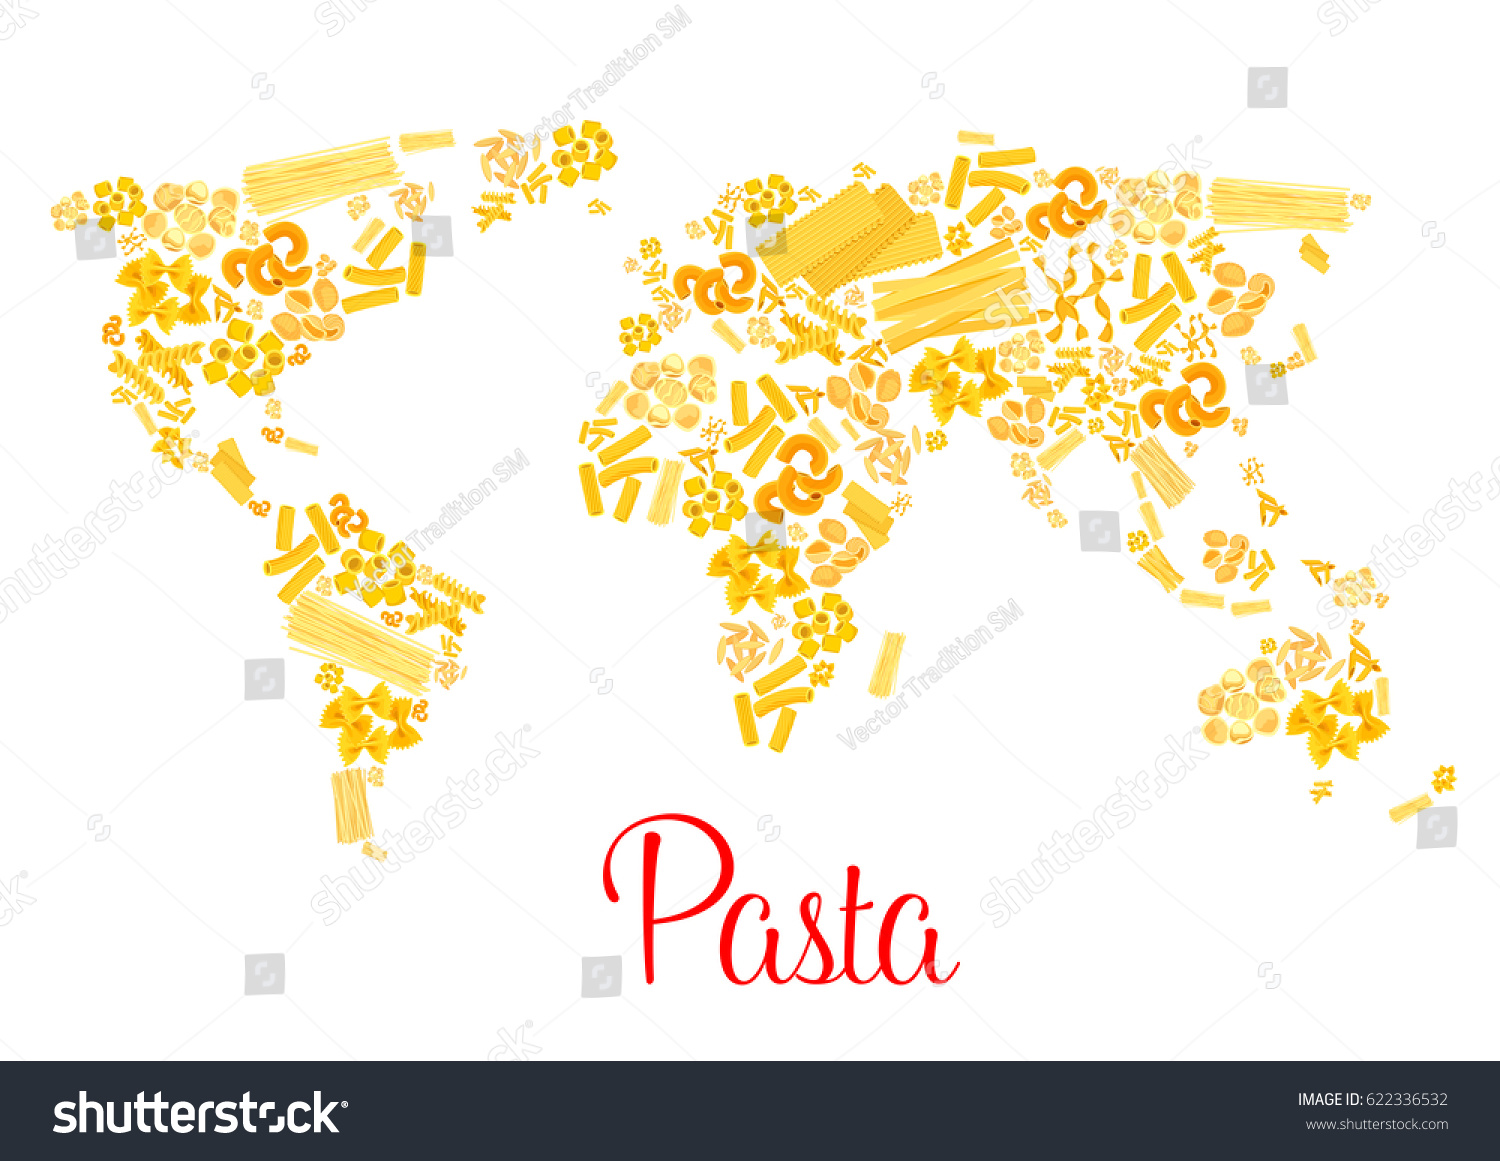 Italian pasta designed world map traditional vector de italian pasta designed world map traditional vector de stock622336532 shutterstock gumiabroncs Gallery